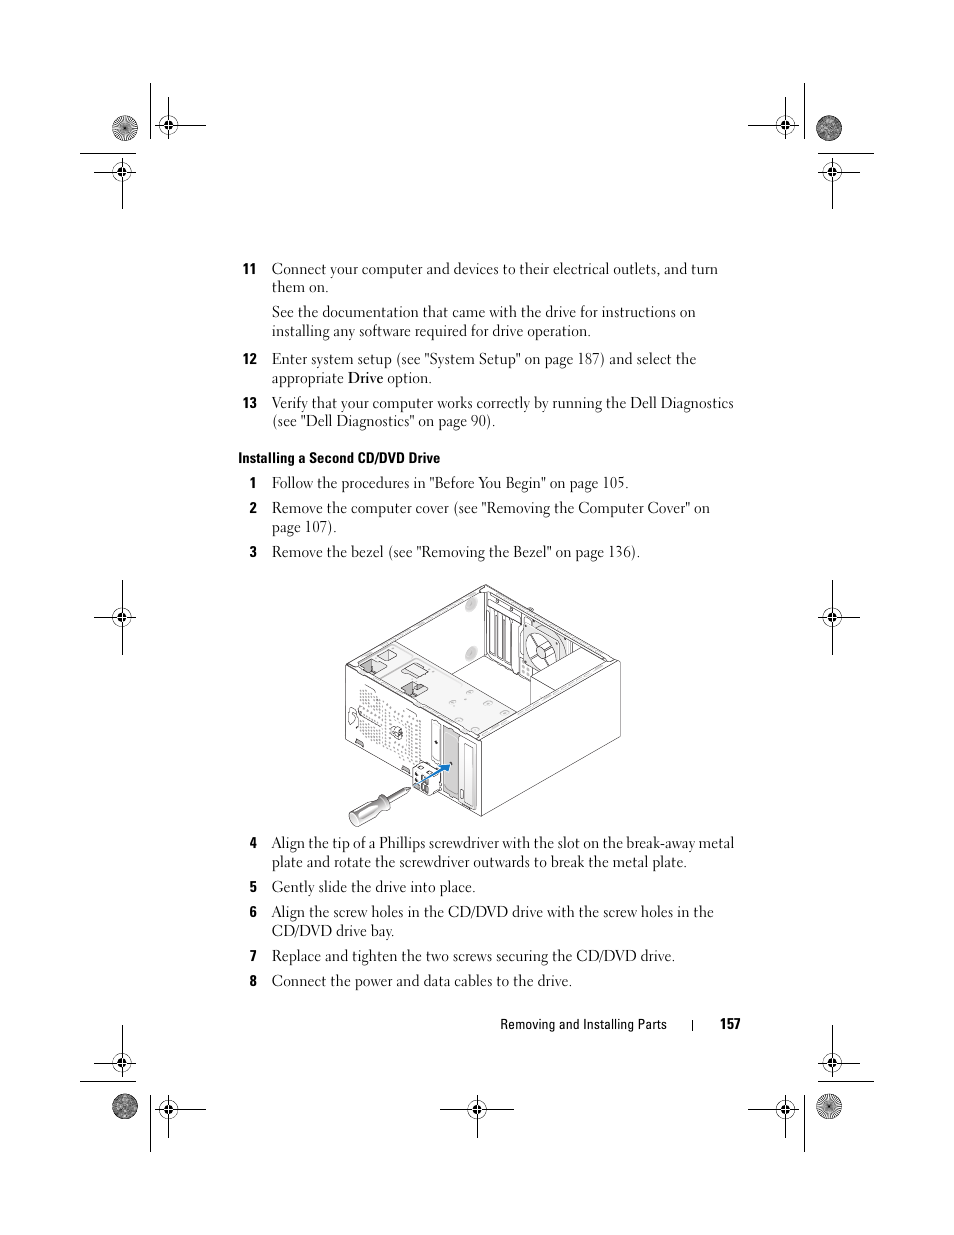 Dell Inspiron 530 Diagram Trusted Schematics Wiring Installing A Second Cd Dvd Drive User Manual 6400